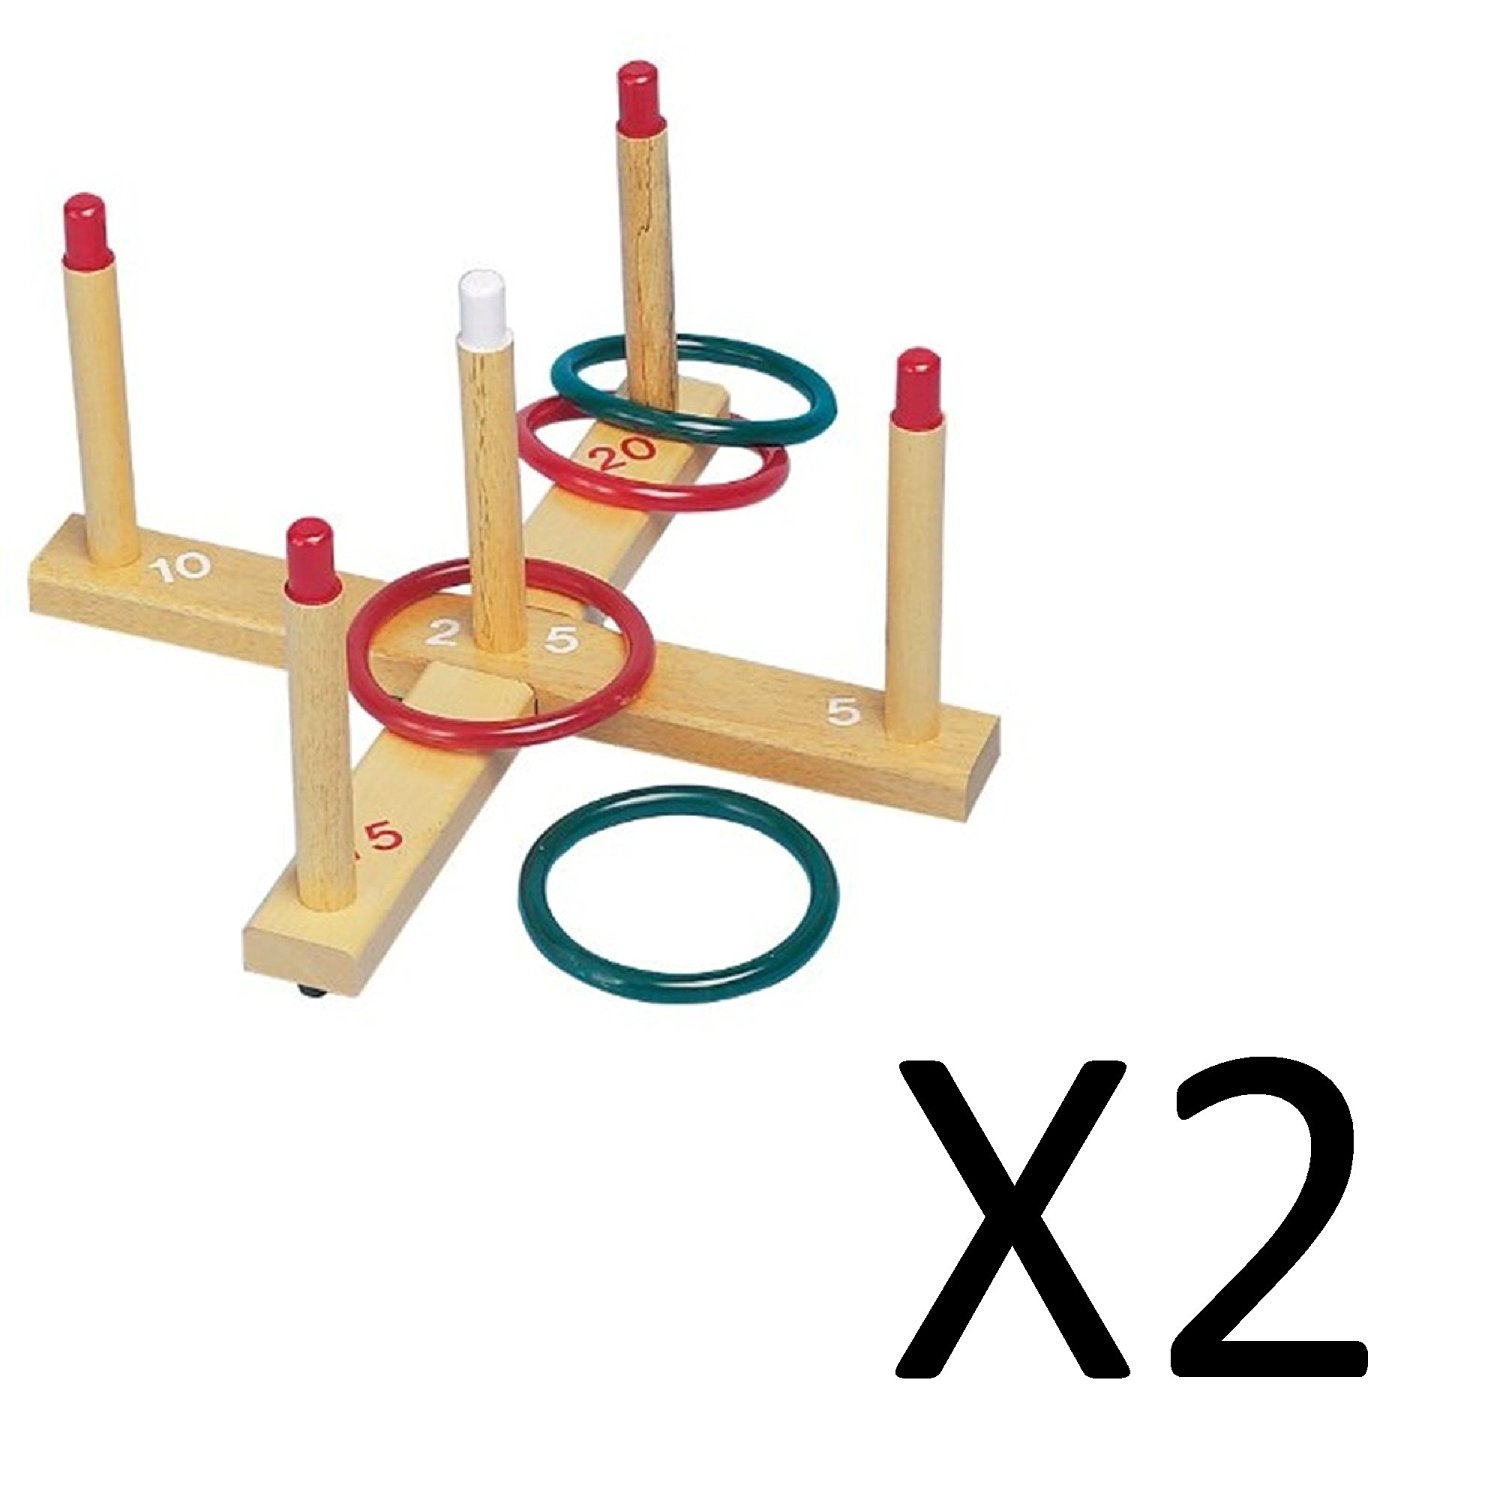 Champion Sports : Ring Toss Set, Plastic/Wood, Assorted Colors, Four Rings/Five Pegs per Set -:- Sold as 2 Packs of - 1 - / - Total of 2 Each